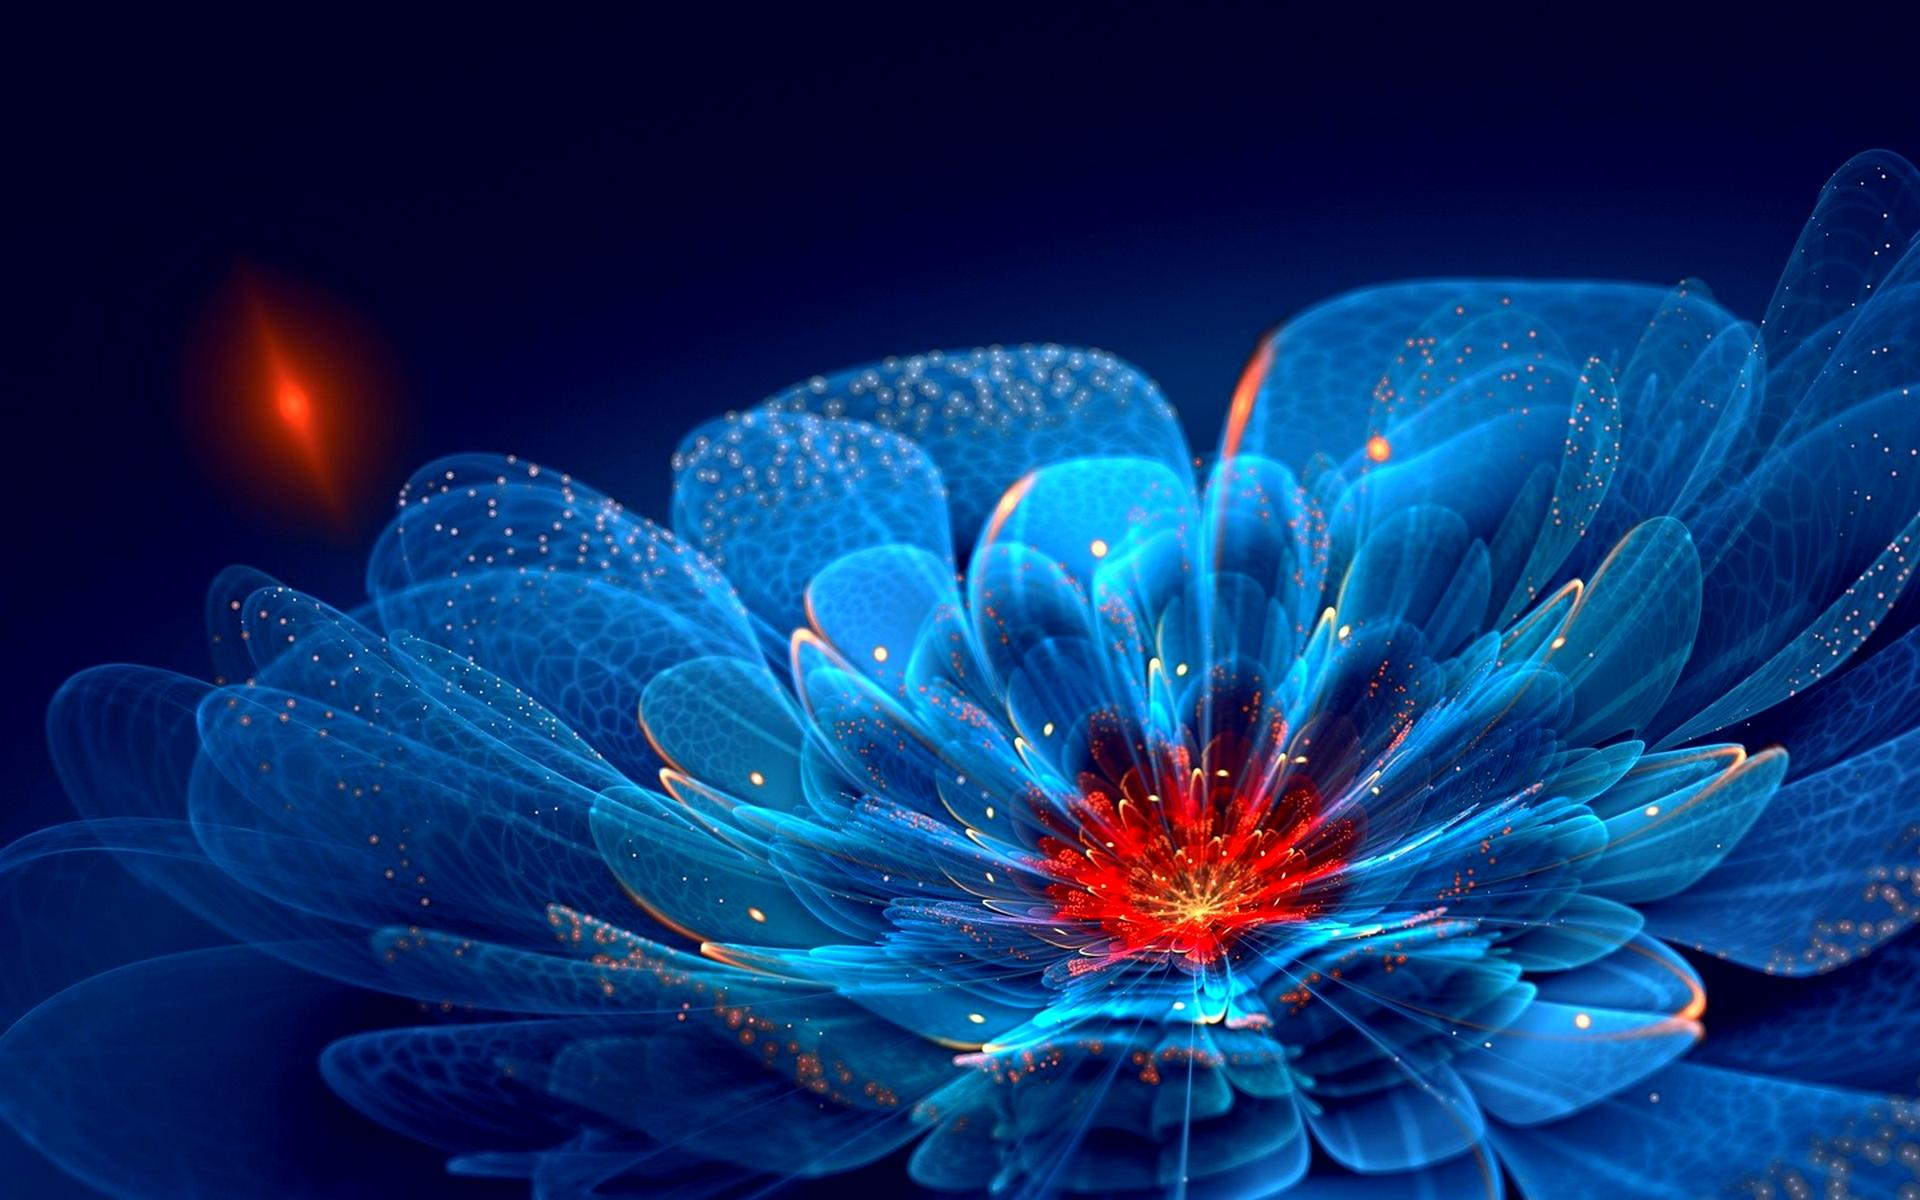 Wallpapers Of The Day Fantastic Neon Flowers 1920x1200 Fantastic 1920x1200